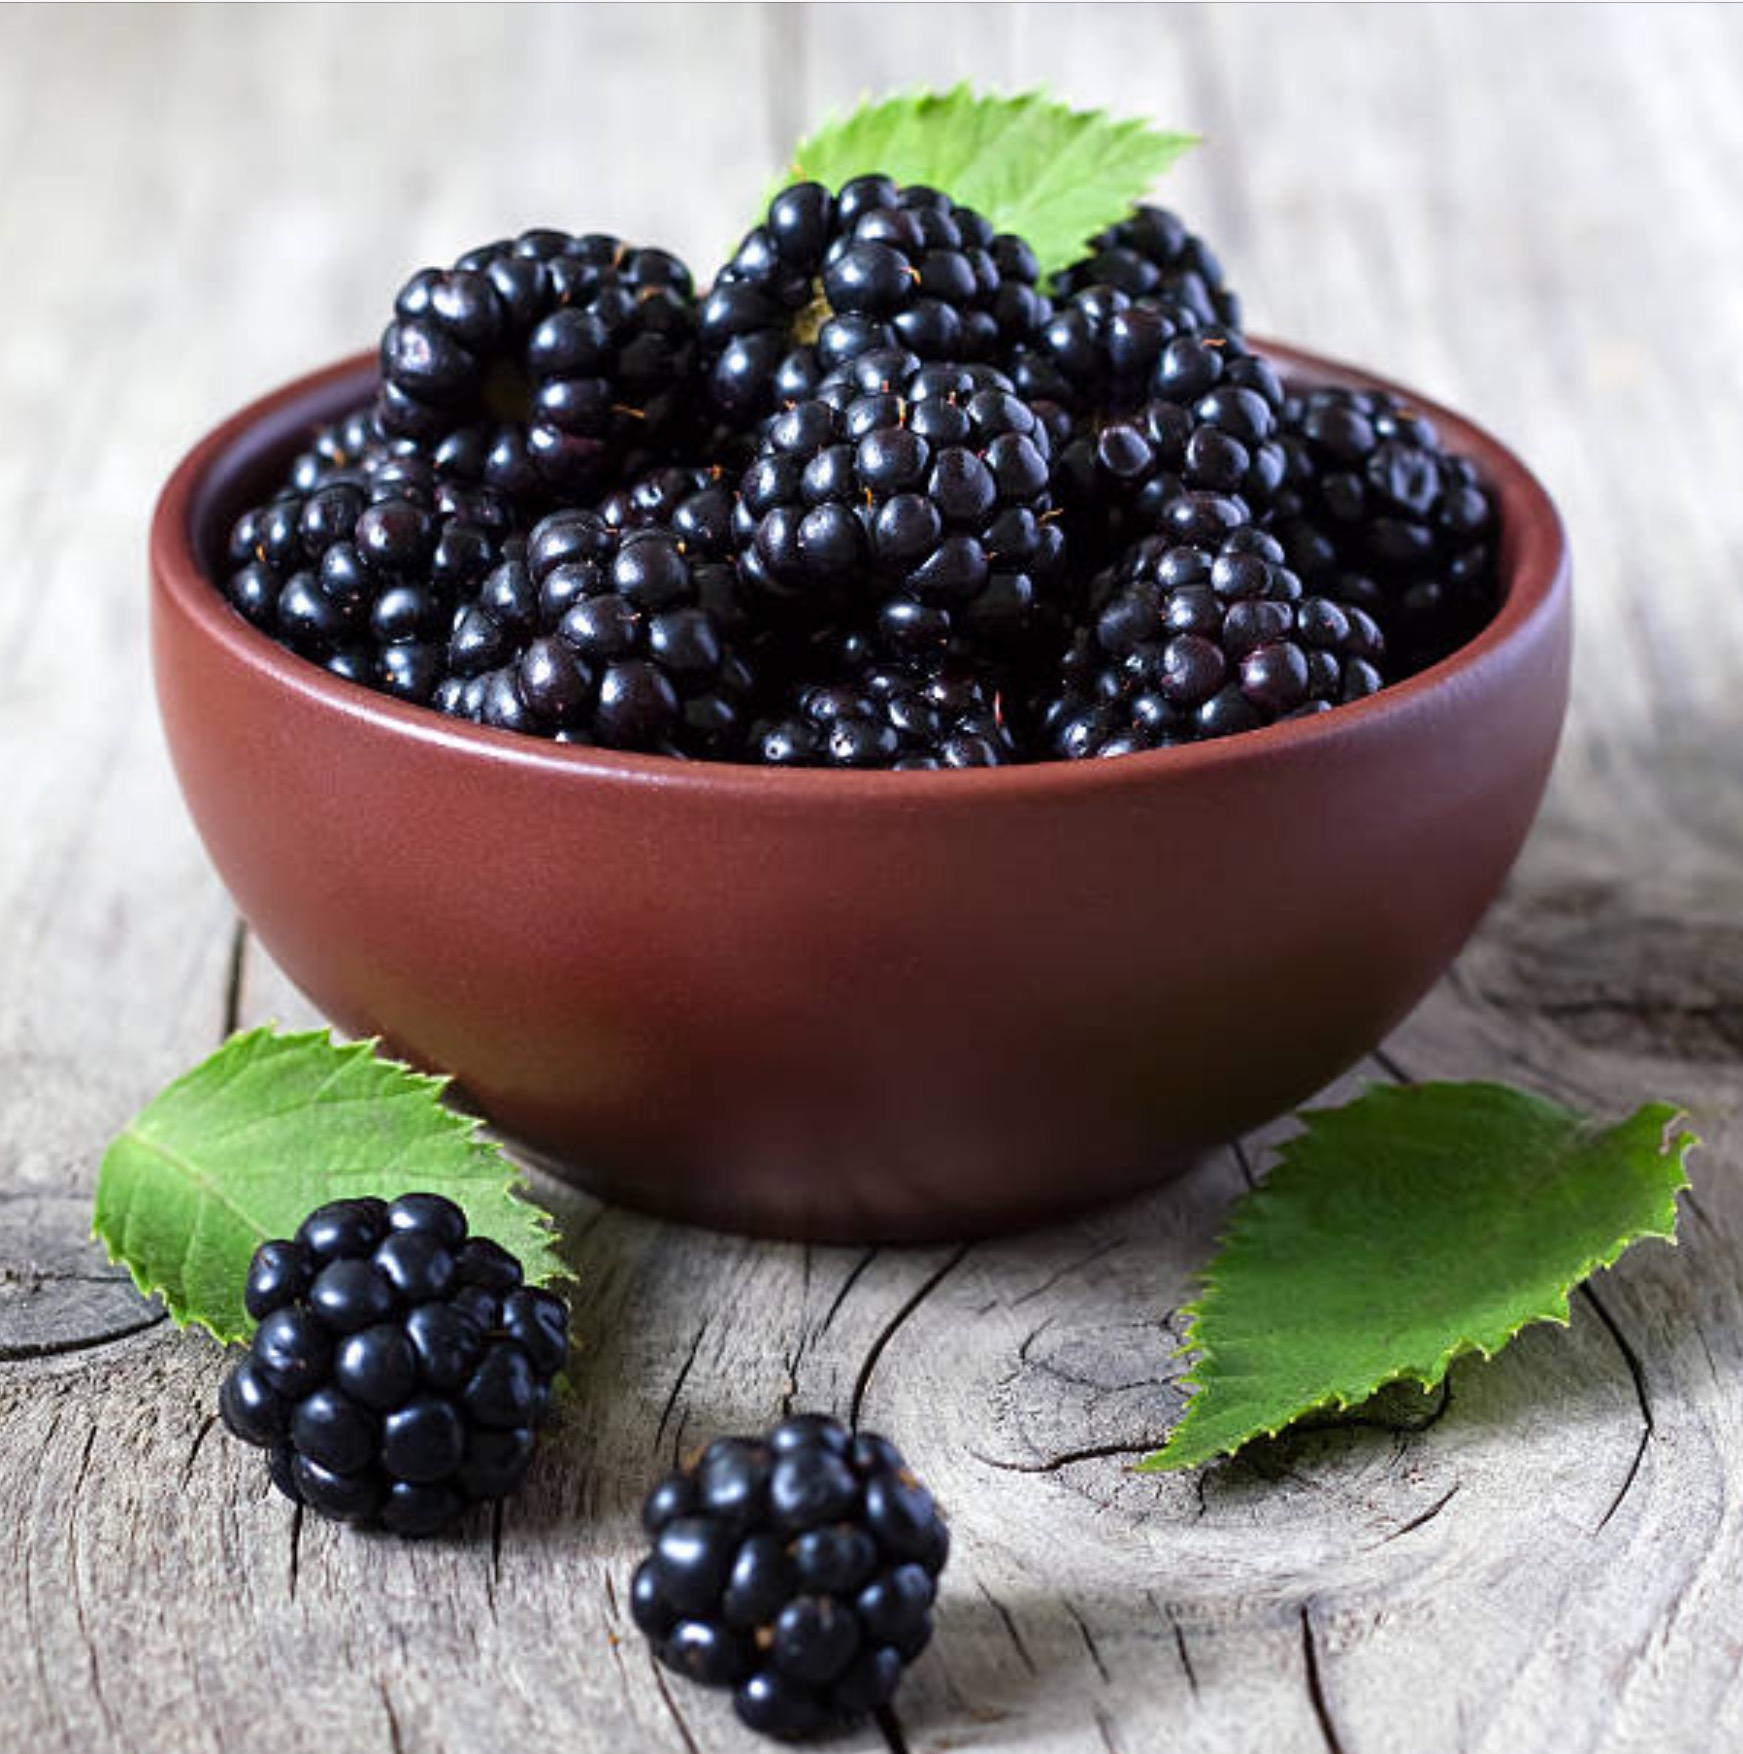 Blackberries - so good for you